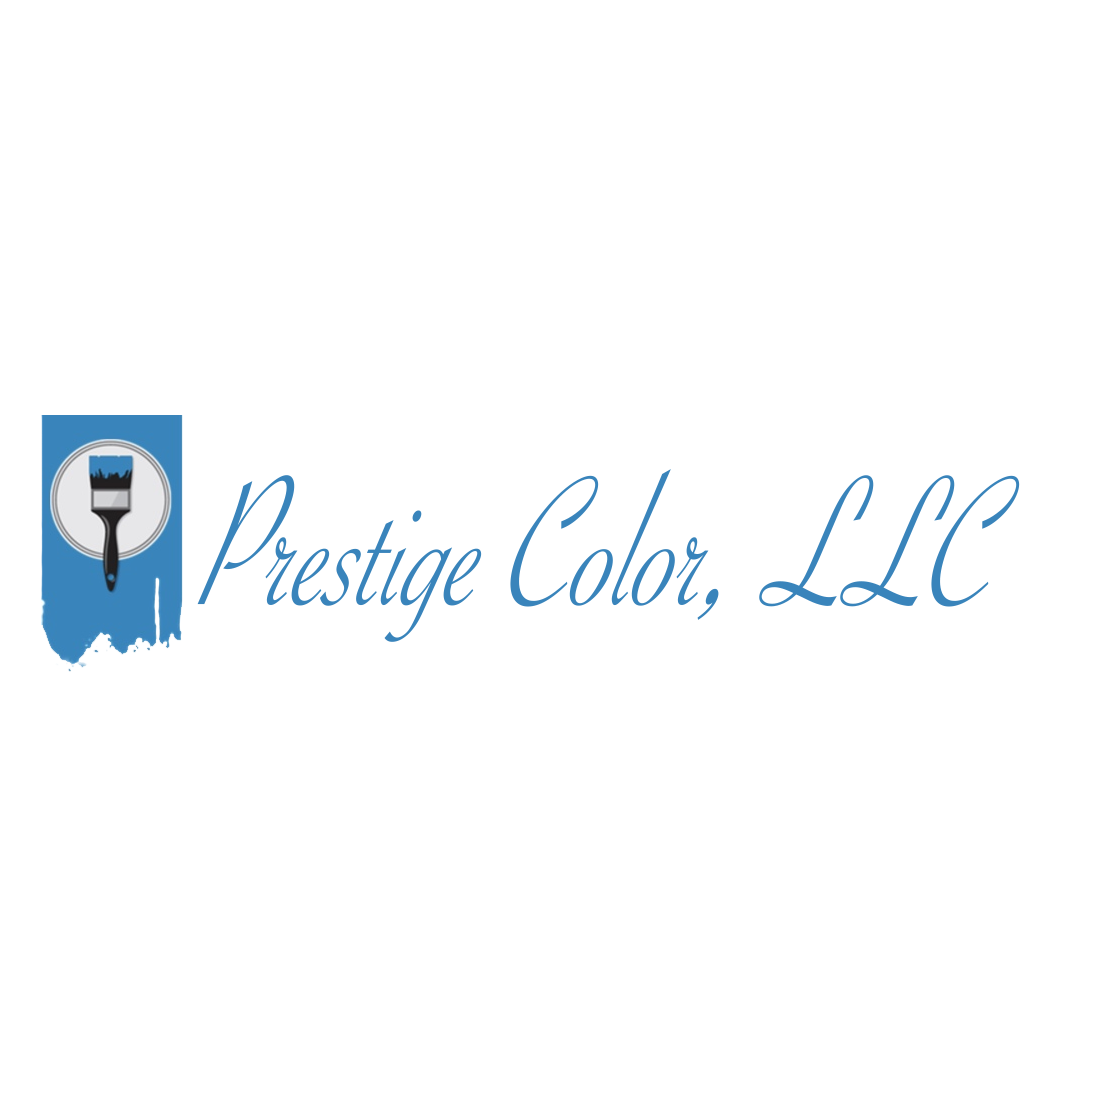 Prestige Color, LLC